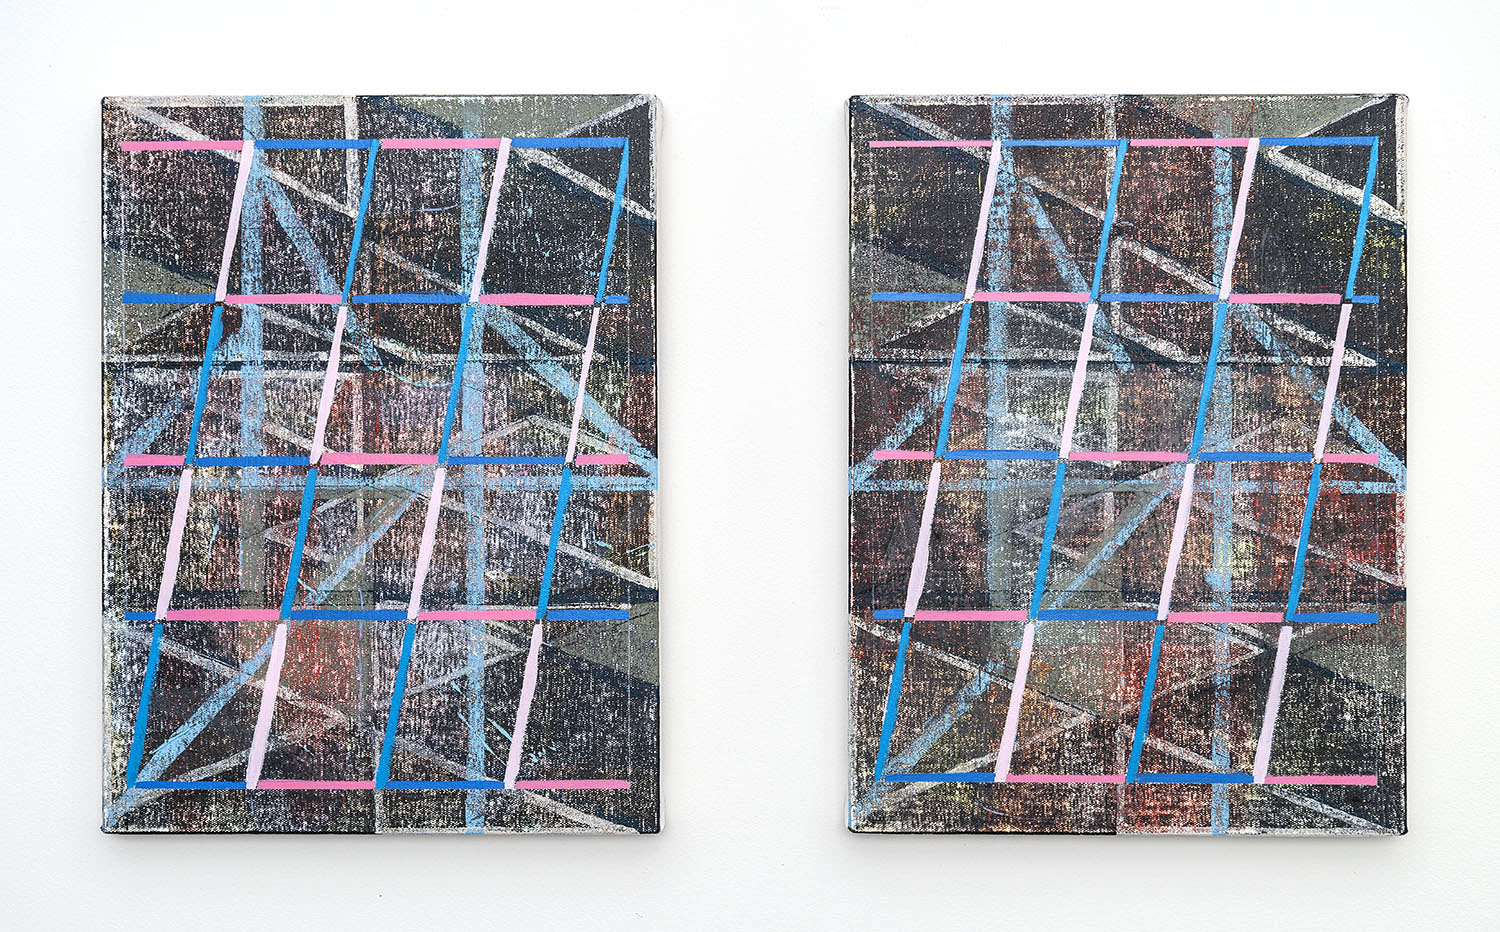 Paolo AraoLet's Get Digital (Diptych), 2015Acrylic on canvas over panelsEach: 16 x 12 inches(40.6 x 30.5 cm)